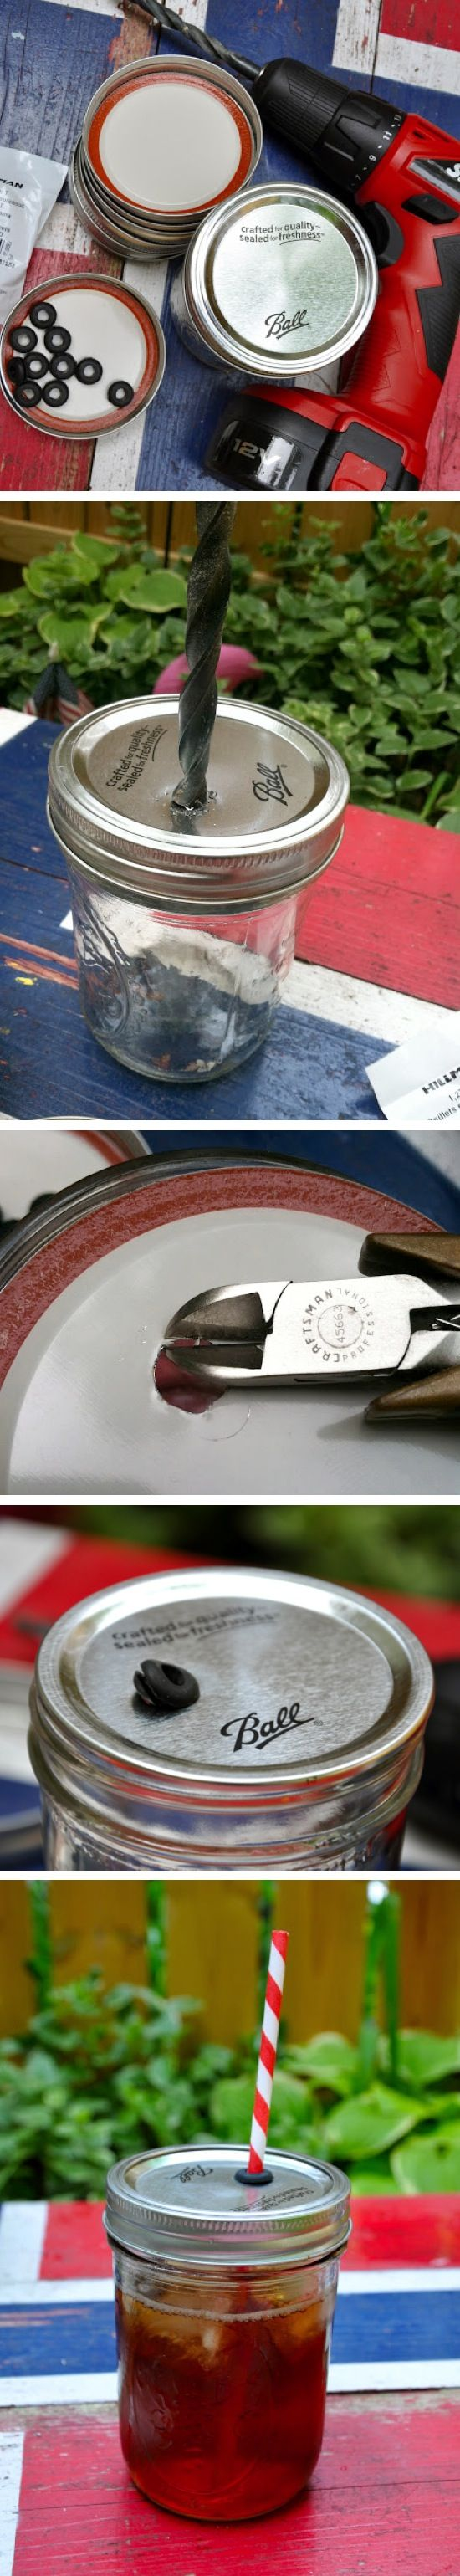 Spill-proof Mason Jar Cups  -   Excellent instructions if you go to Little Bit Funky once clicking on this pin to open it.  Love mason jar looks